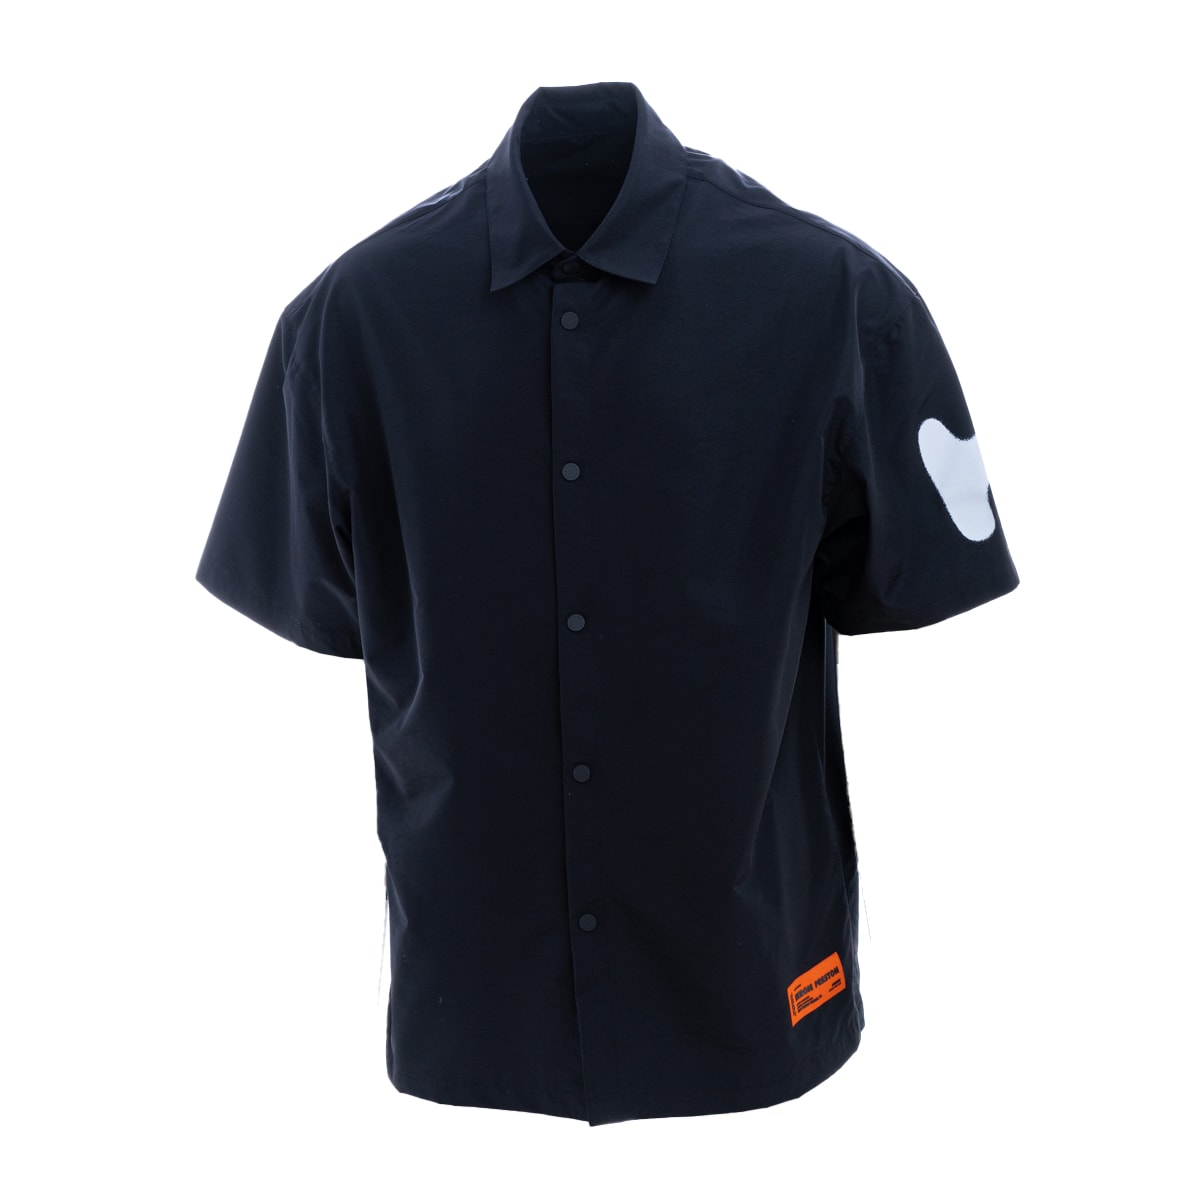 Heron Preston Shirts HERON PRESTON HERON PRESTON TECHNICAL FABRIC SHIRT